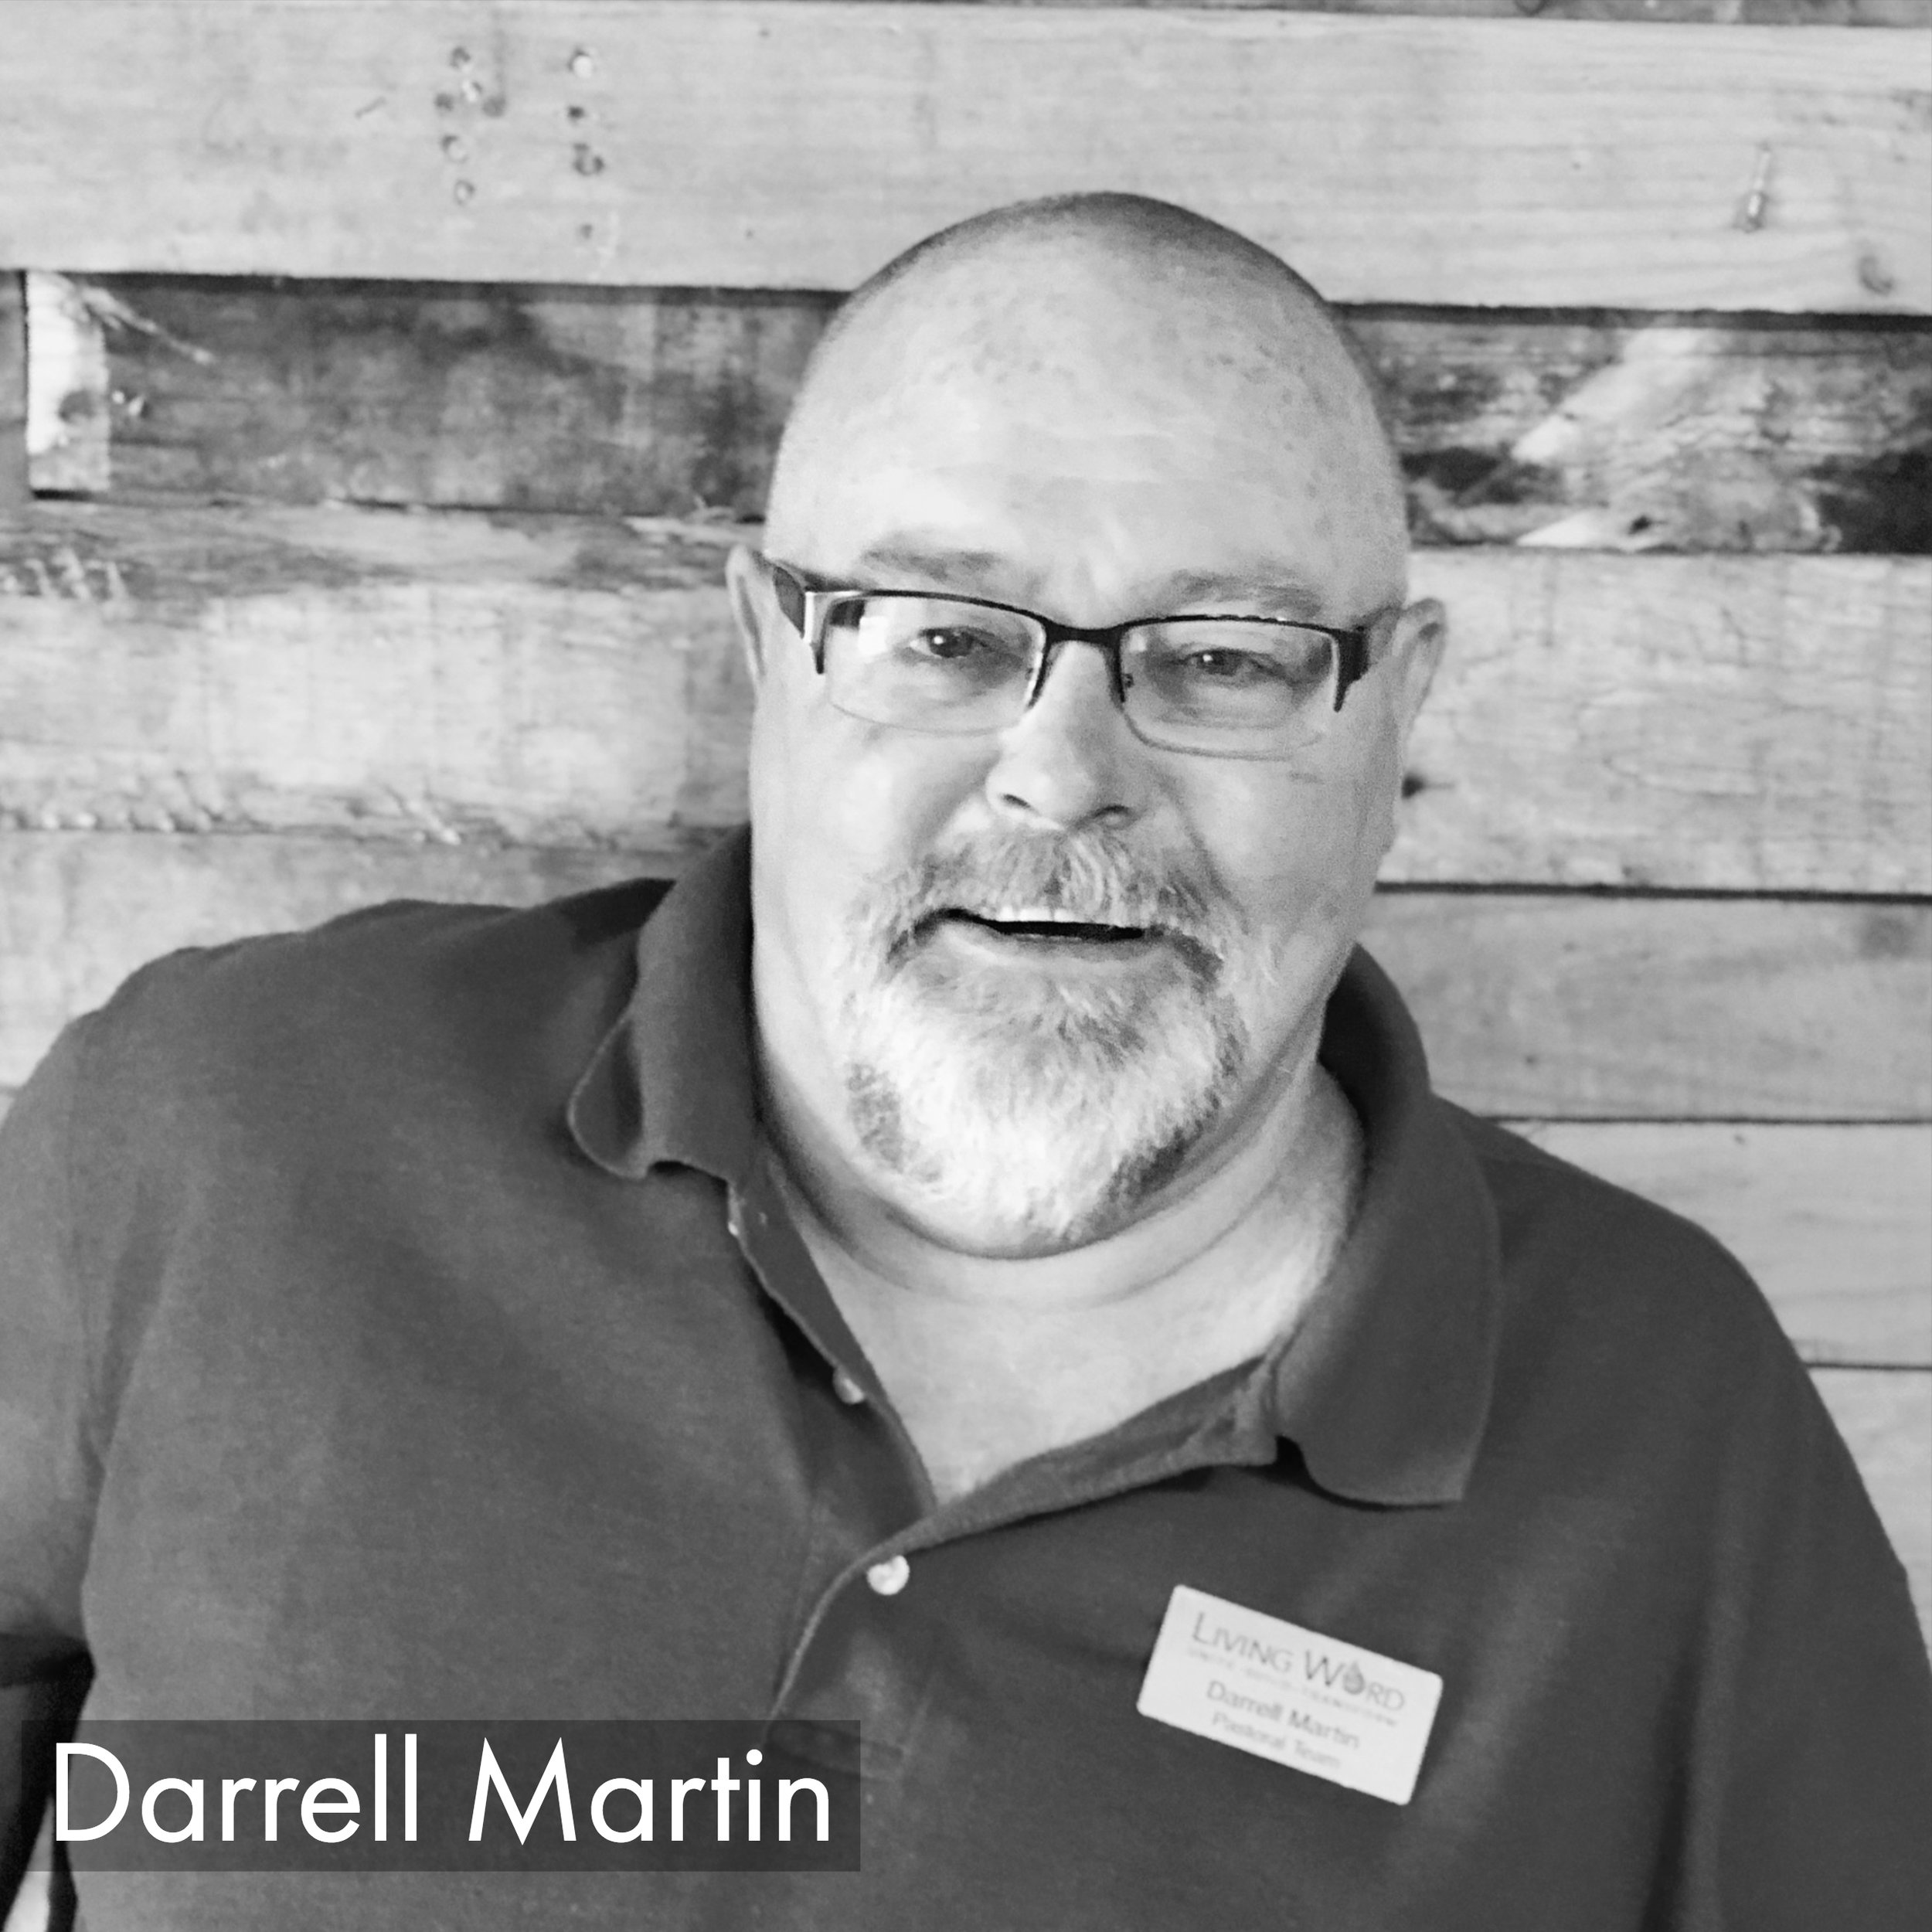 """""""We are a men's group who gather for breakfast, fellowship and taking a deep look into the word of God."""" Darrell's group meets on Saturdays at 8AM, and is currently digging deeper in study and discussion of the LWC Sunday message. For more info, Darrell can be reached at 423-887-4233."""